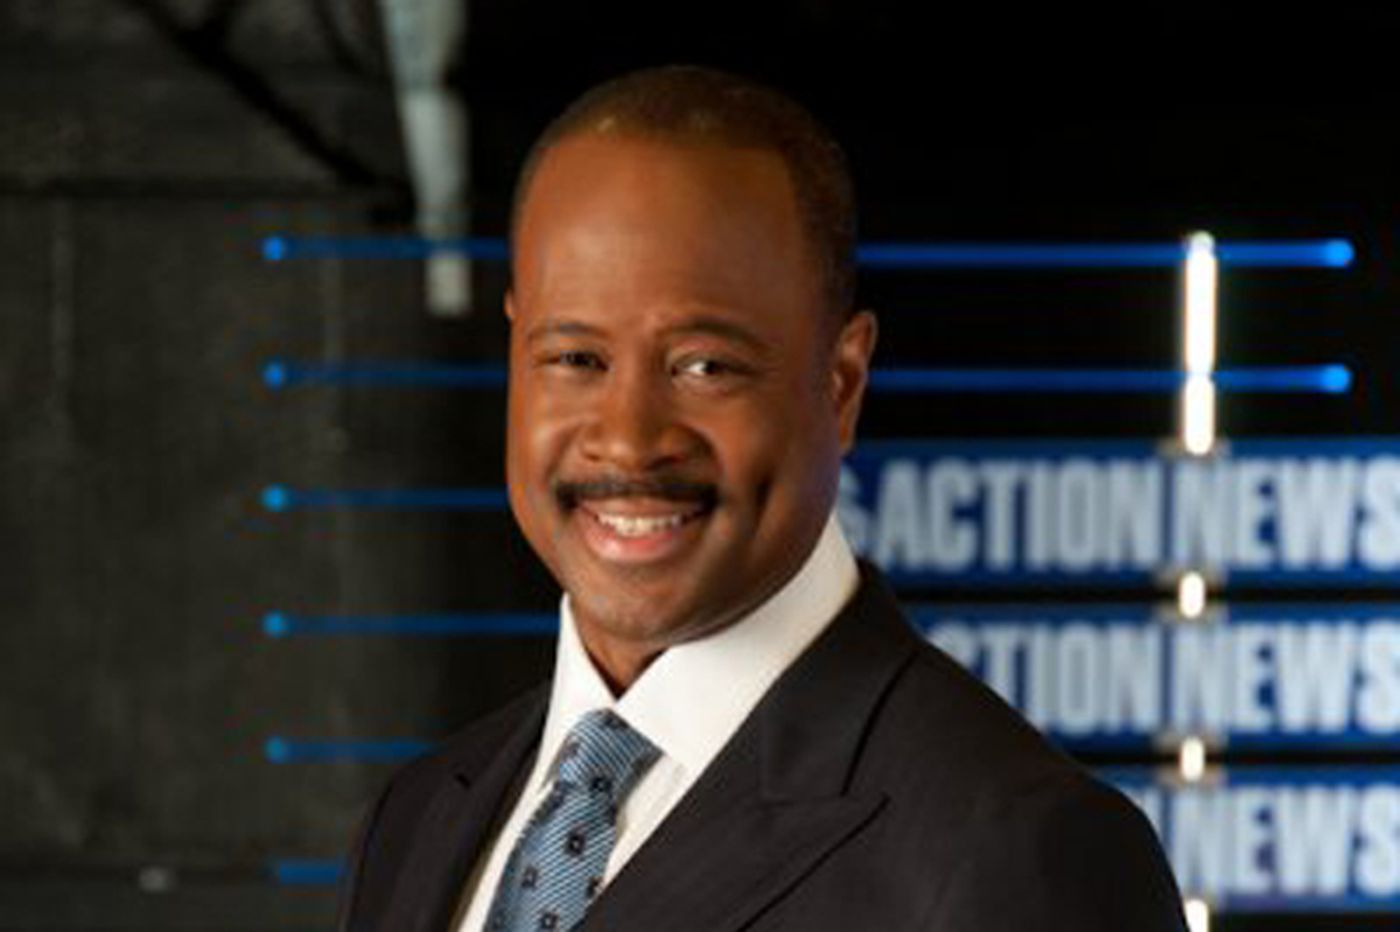 Abc 6 Philly >> Action News Anchor Rick Williams Comes Clean About His Double Life